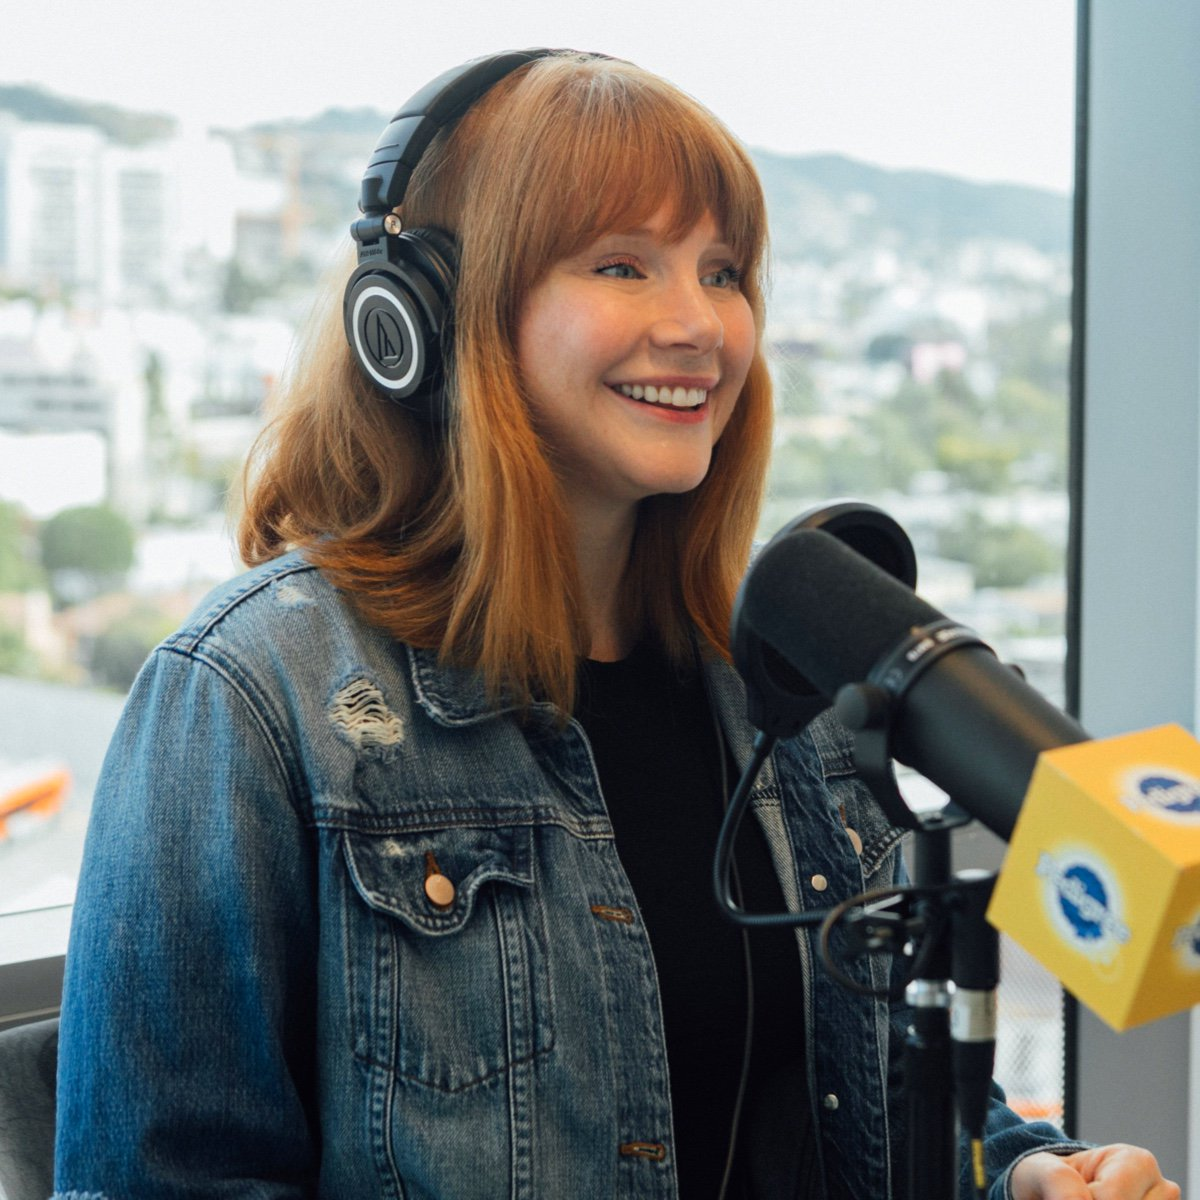 """Don't miss Bryce Dallas Howard's story about Littlefoot, the heroic dog who saved her little brother's life. It's part of the new podcast """"The Dog That Changed Me,"""" hosted by @KSchwarzenegger. #EveryPupsSuperpower #PEDIGREE  https://t.co/6K53so7r17 https://t.co/f6iSgAlLfT"""